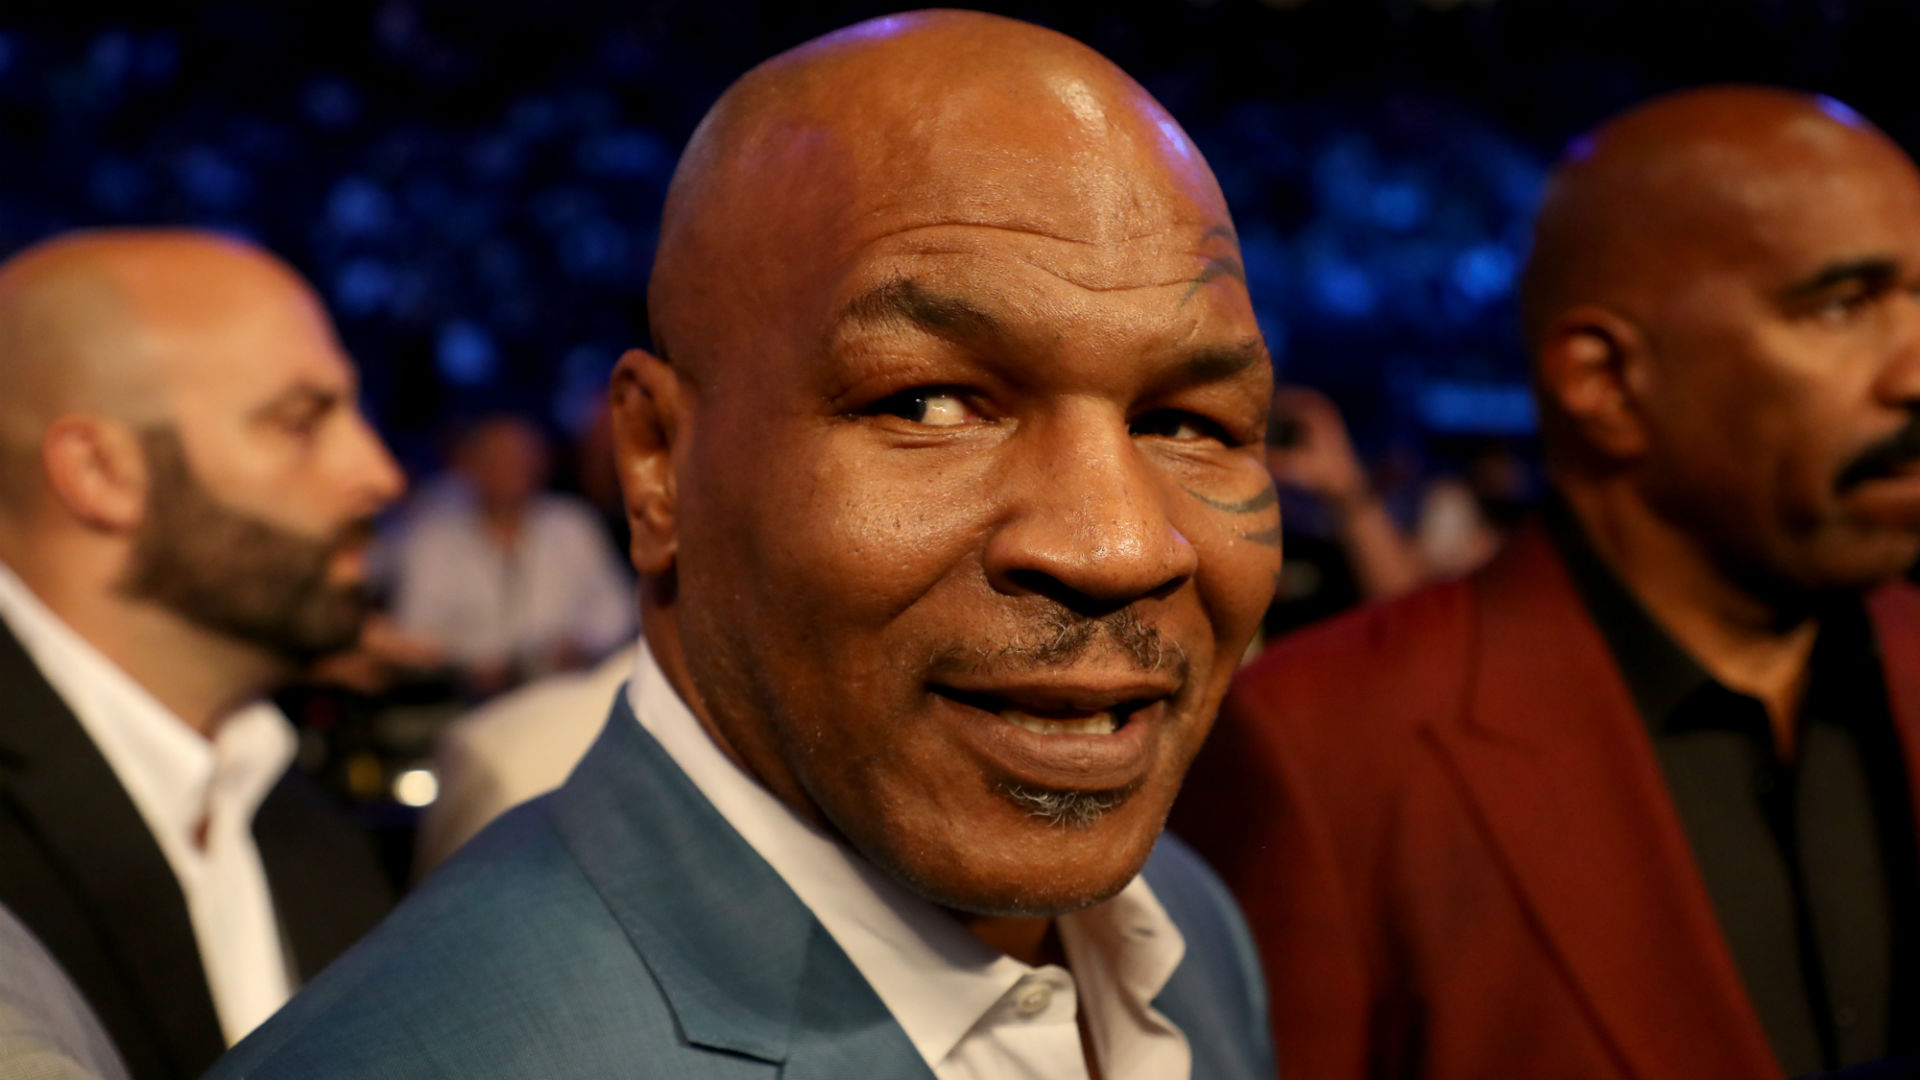 Mike Tyson declares 'I'm back' during ferocious training session